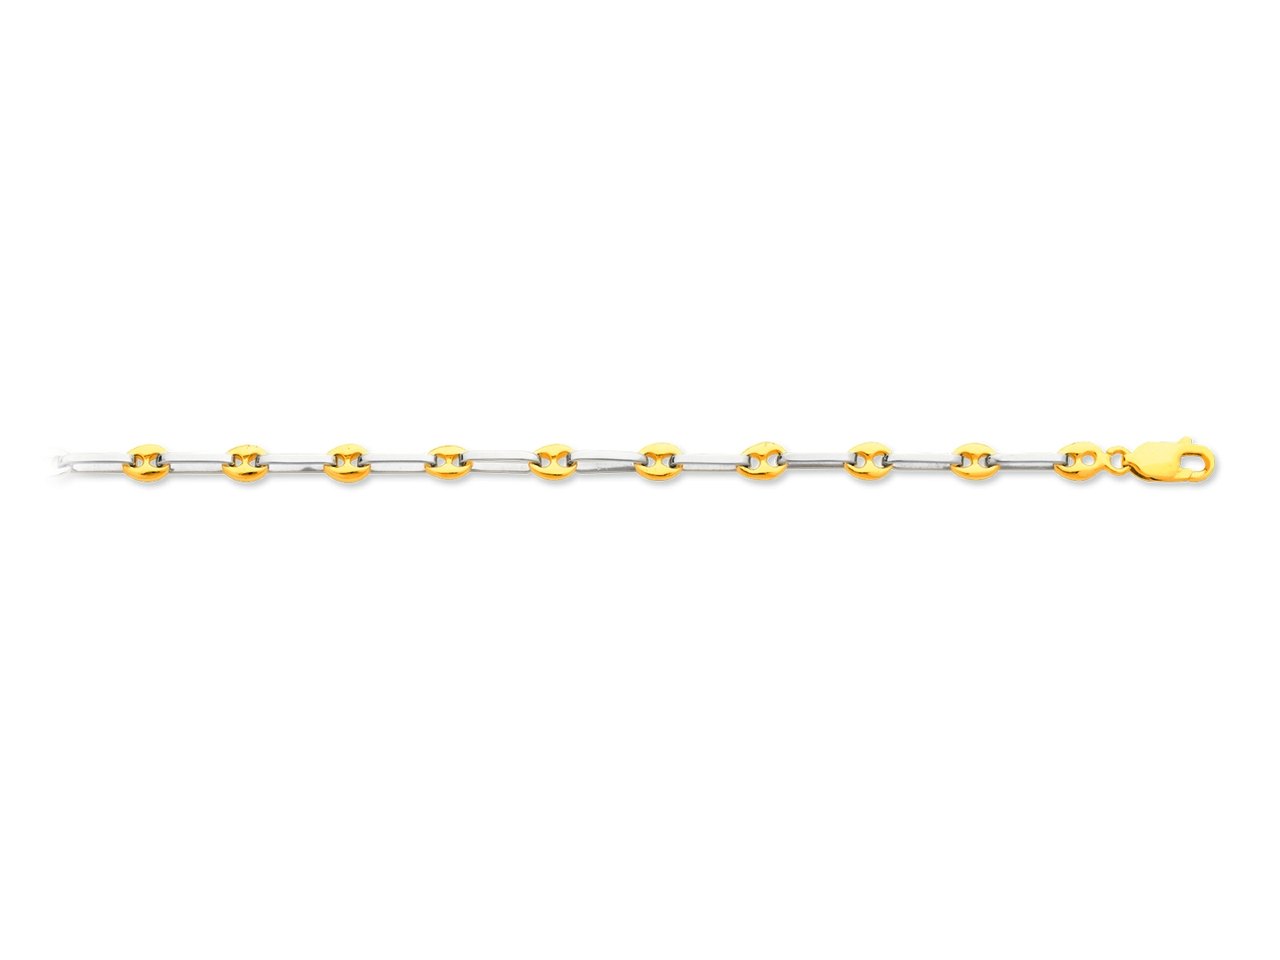 Bracelet forçat alternée carré grain de café, Or 18k bicolore, 4,6 mm, 18 cm